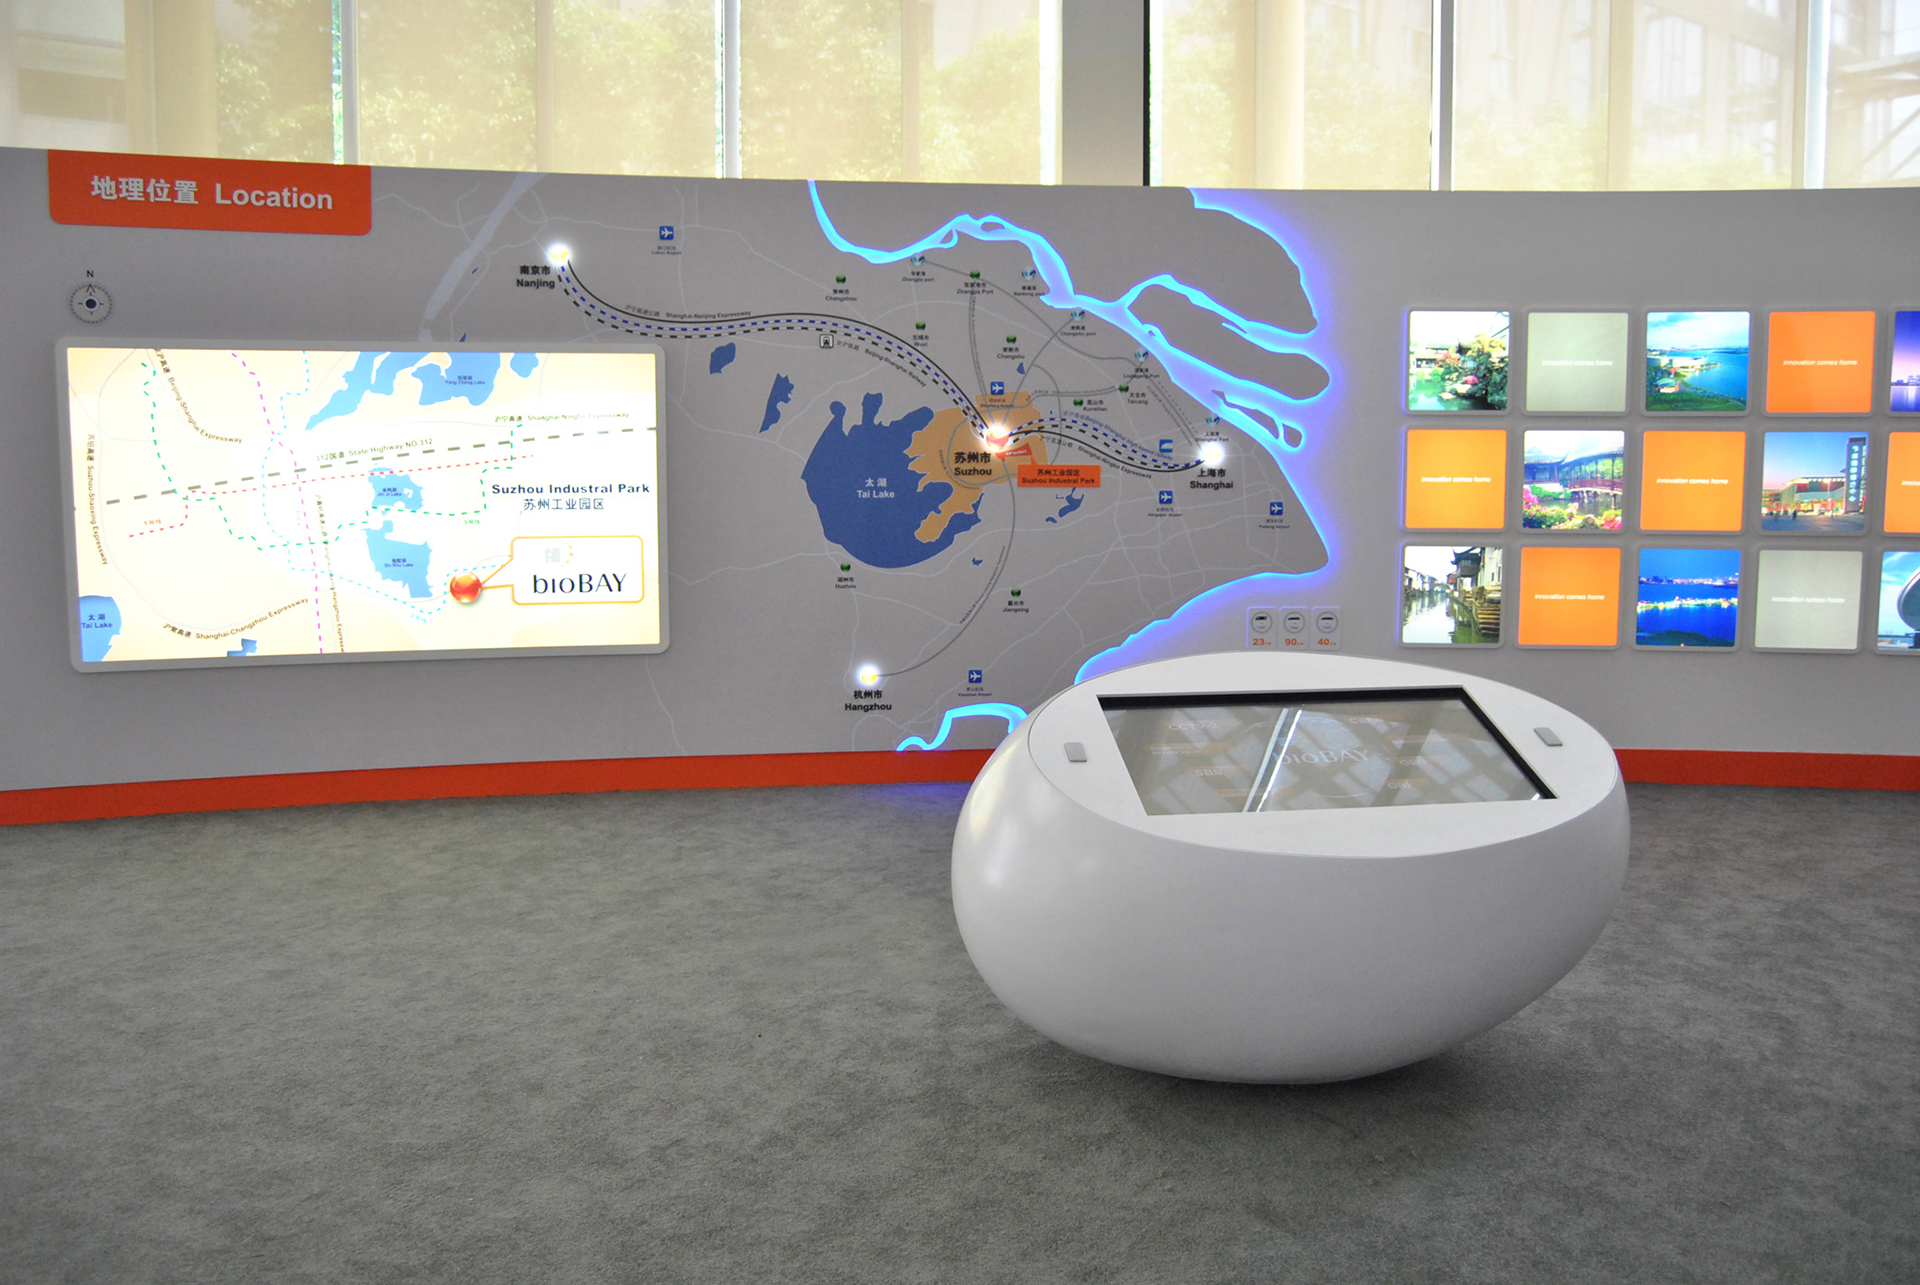 In the entrance area, an oval multi-touch table invites visitors to find out about bioBAY in an interactive way. The multi-touch execution of the displays allows several people to view and watch different video films at the same time.